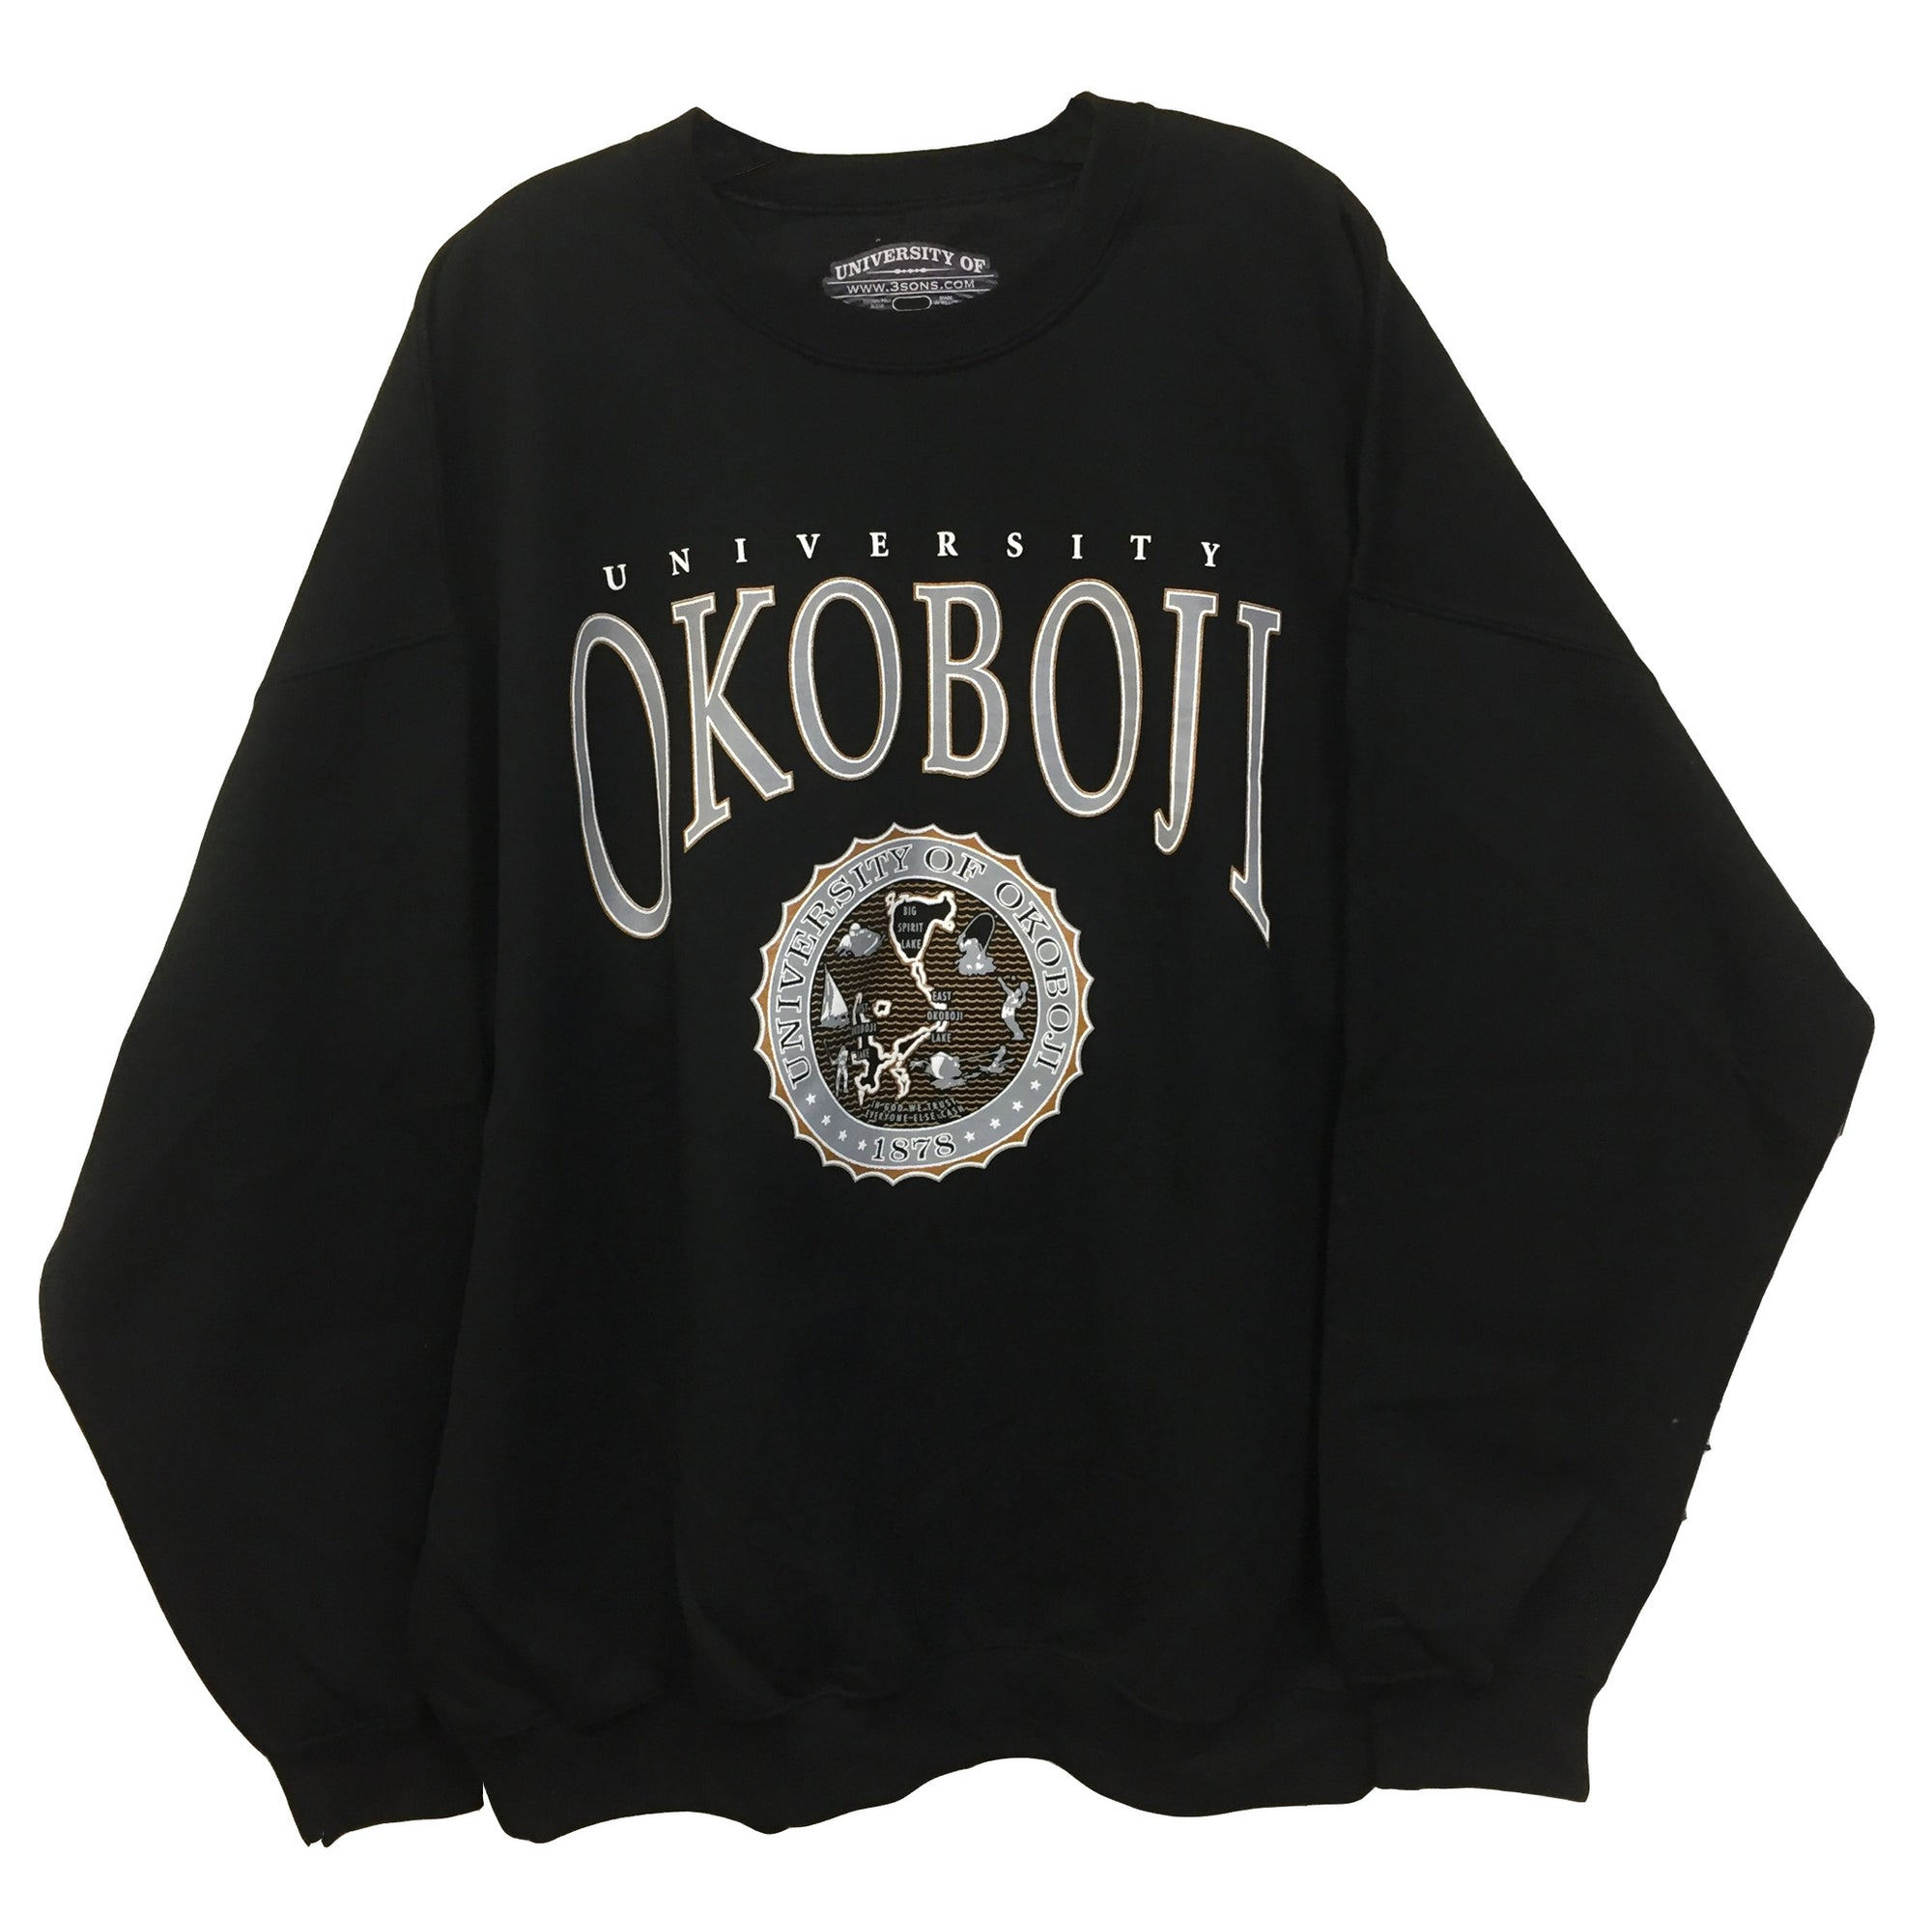 Classic University of Okoboji Black Crewneck Sweatshirt